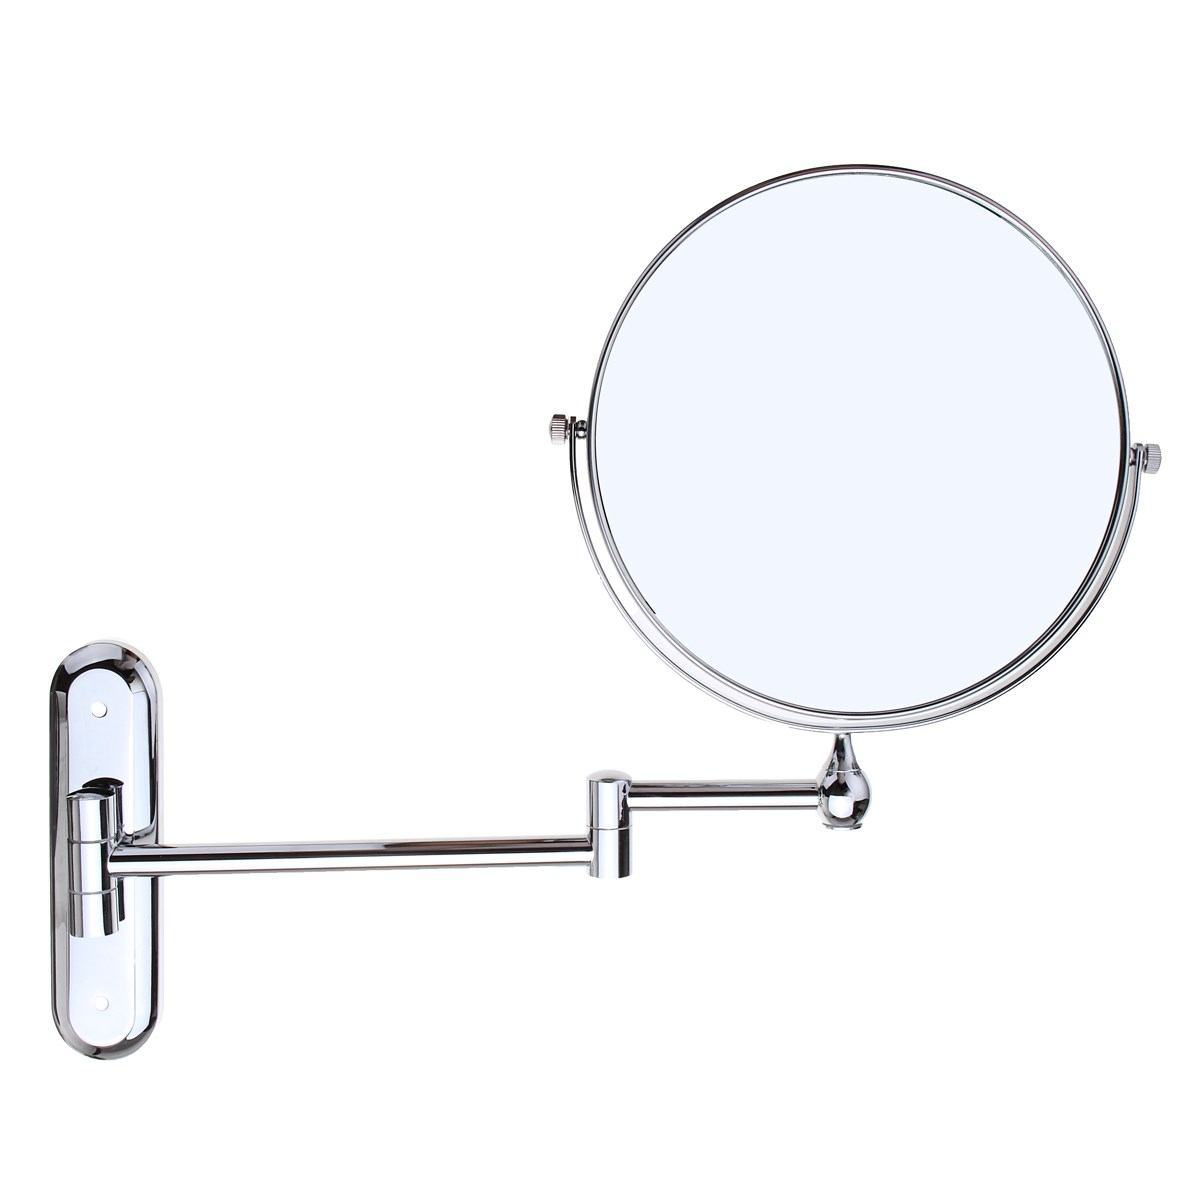 200mm 7x makeup magnifying mirror cosmetic double side mirror round brass wall mounted extending folding mirrors